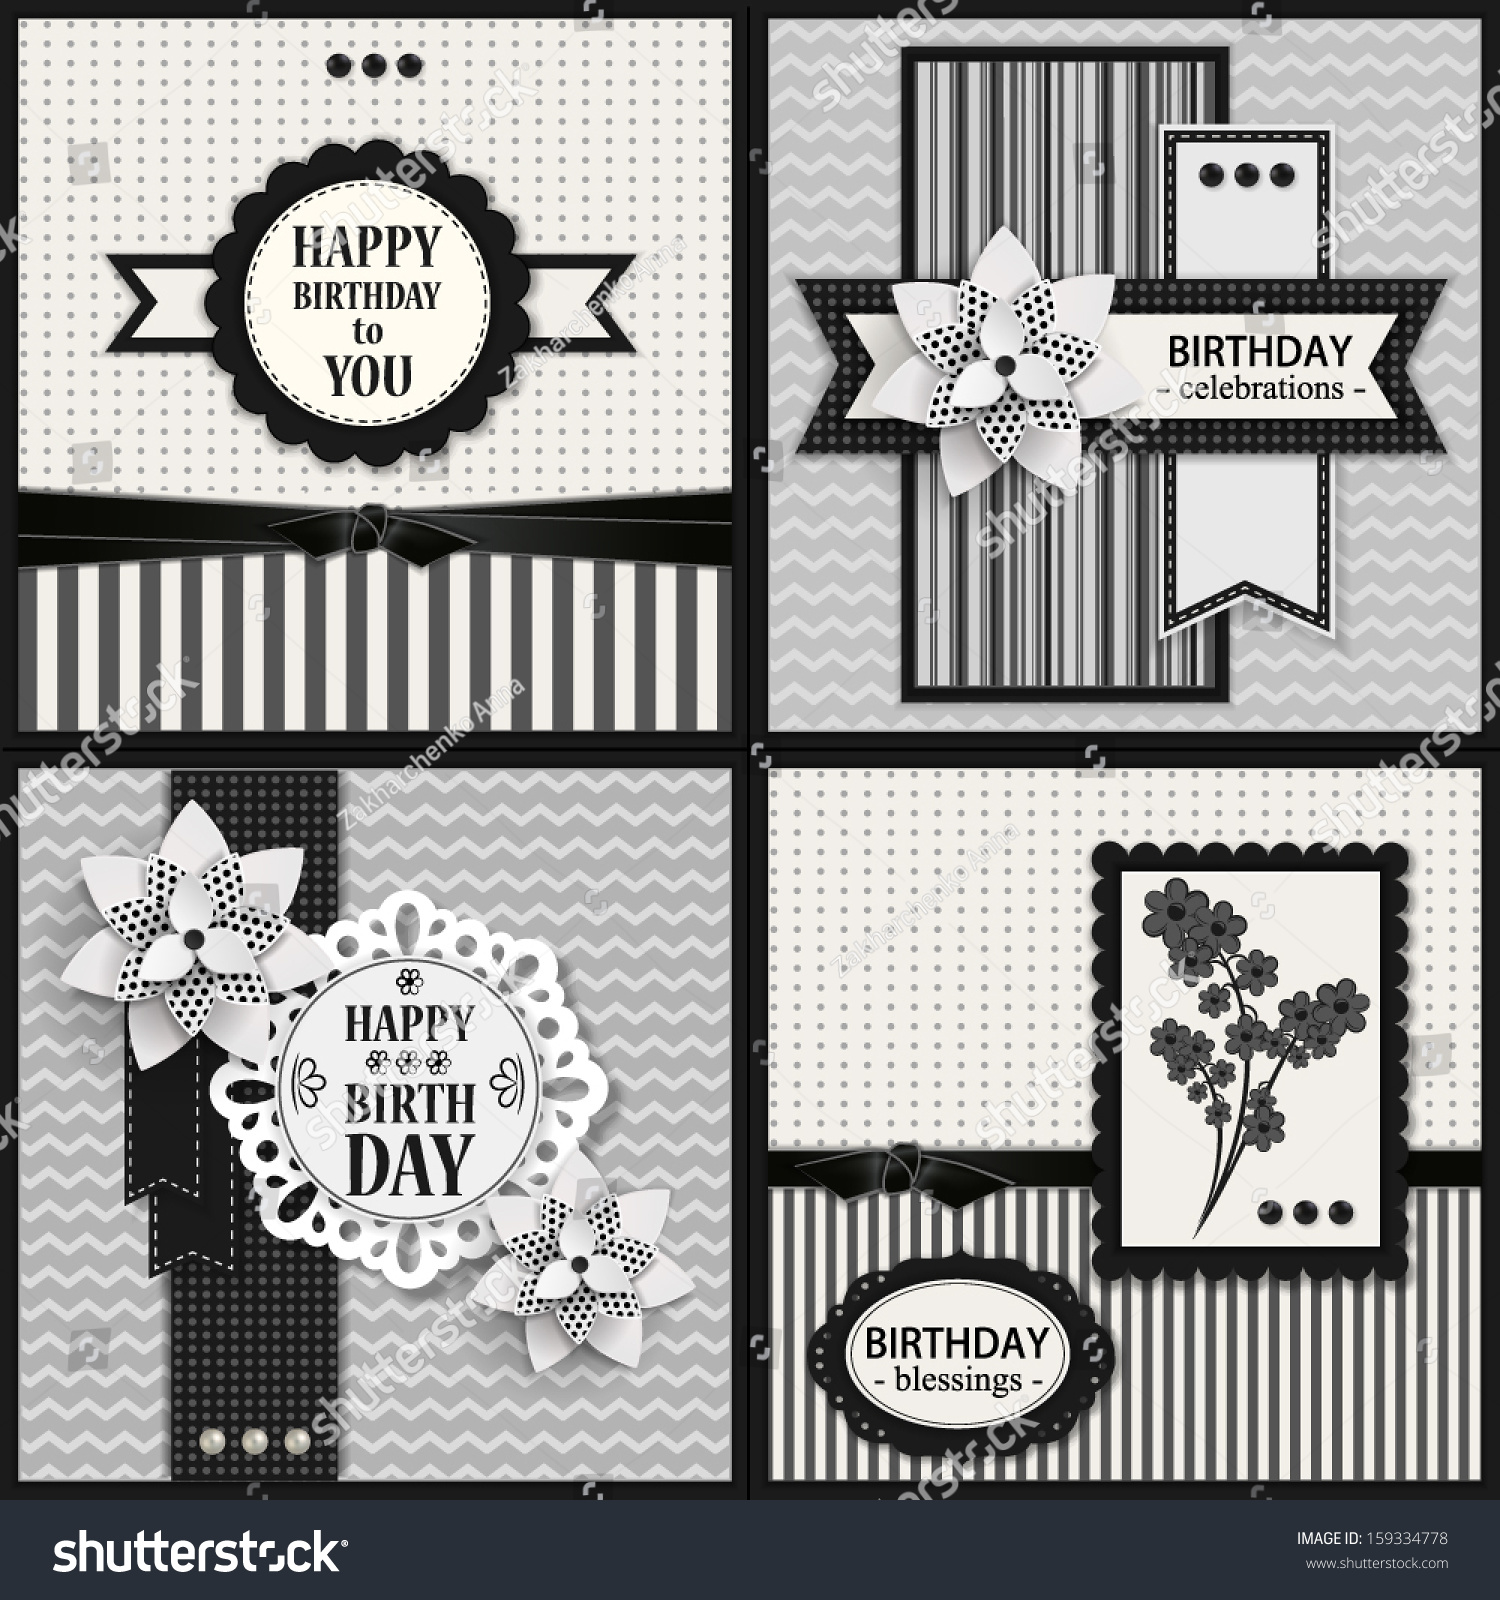 Set Of Four Black And White Birthday Cards Template Vector Illustration